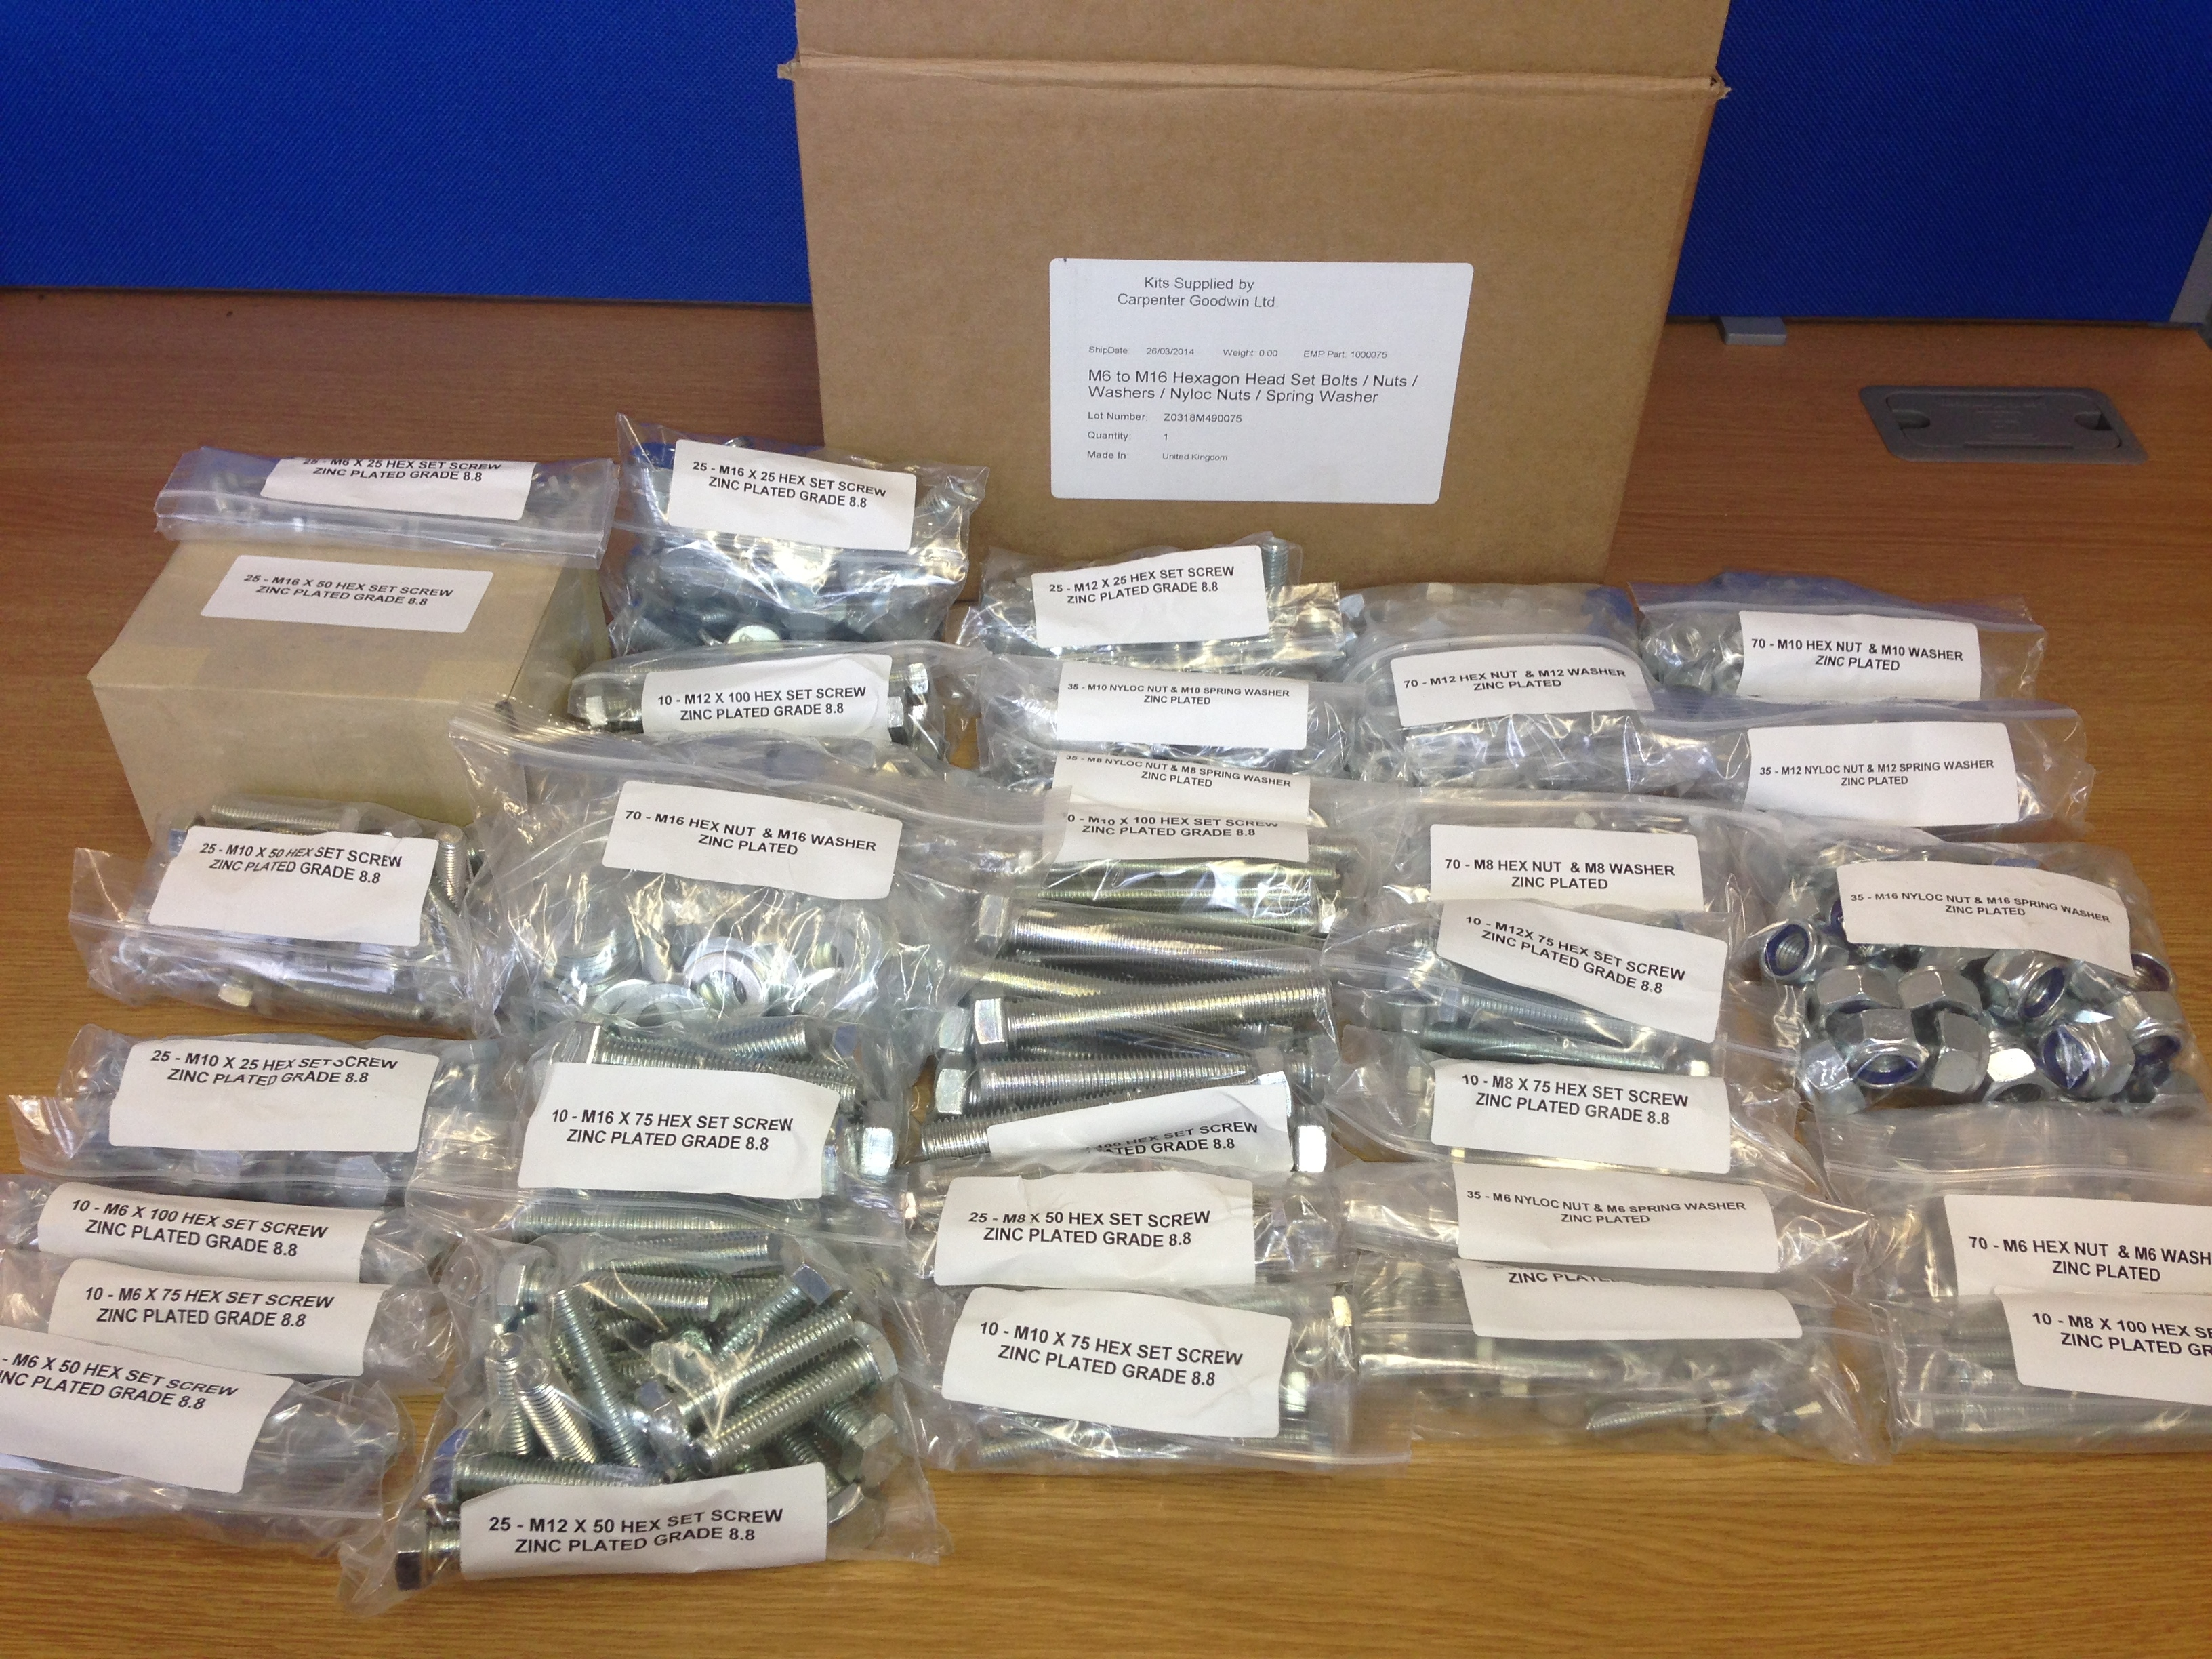 M6 - M16 Nut and Bolt Kit